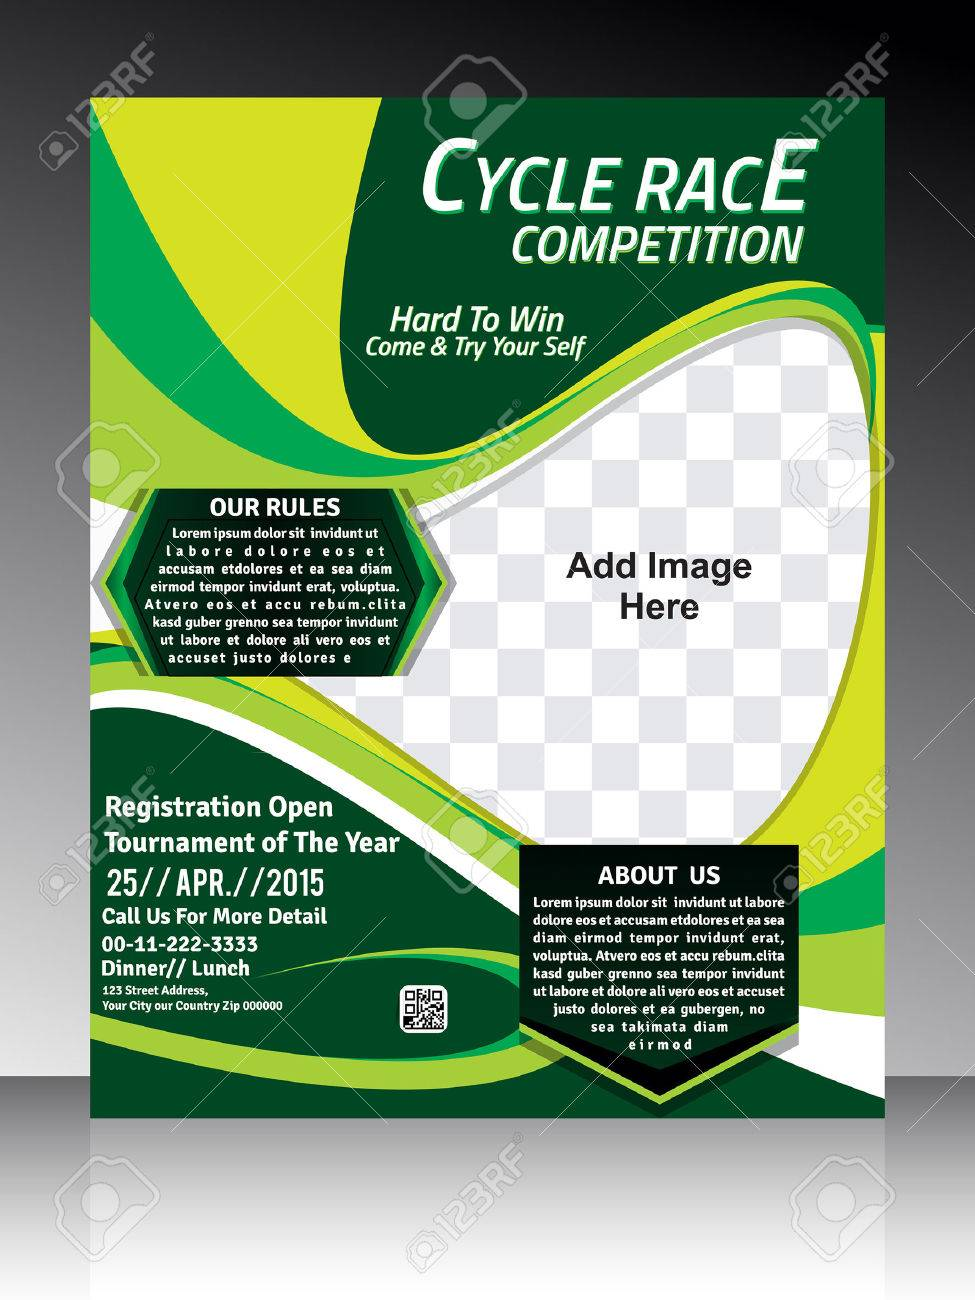 cycle race flyer template design vector illustration royalty cycle race flyer template design vector illustration stock vector 37175991